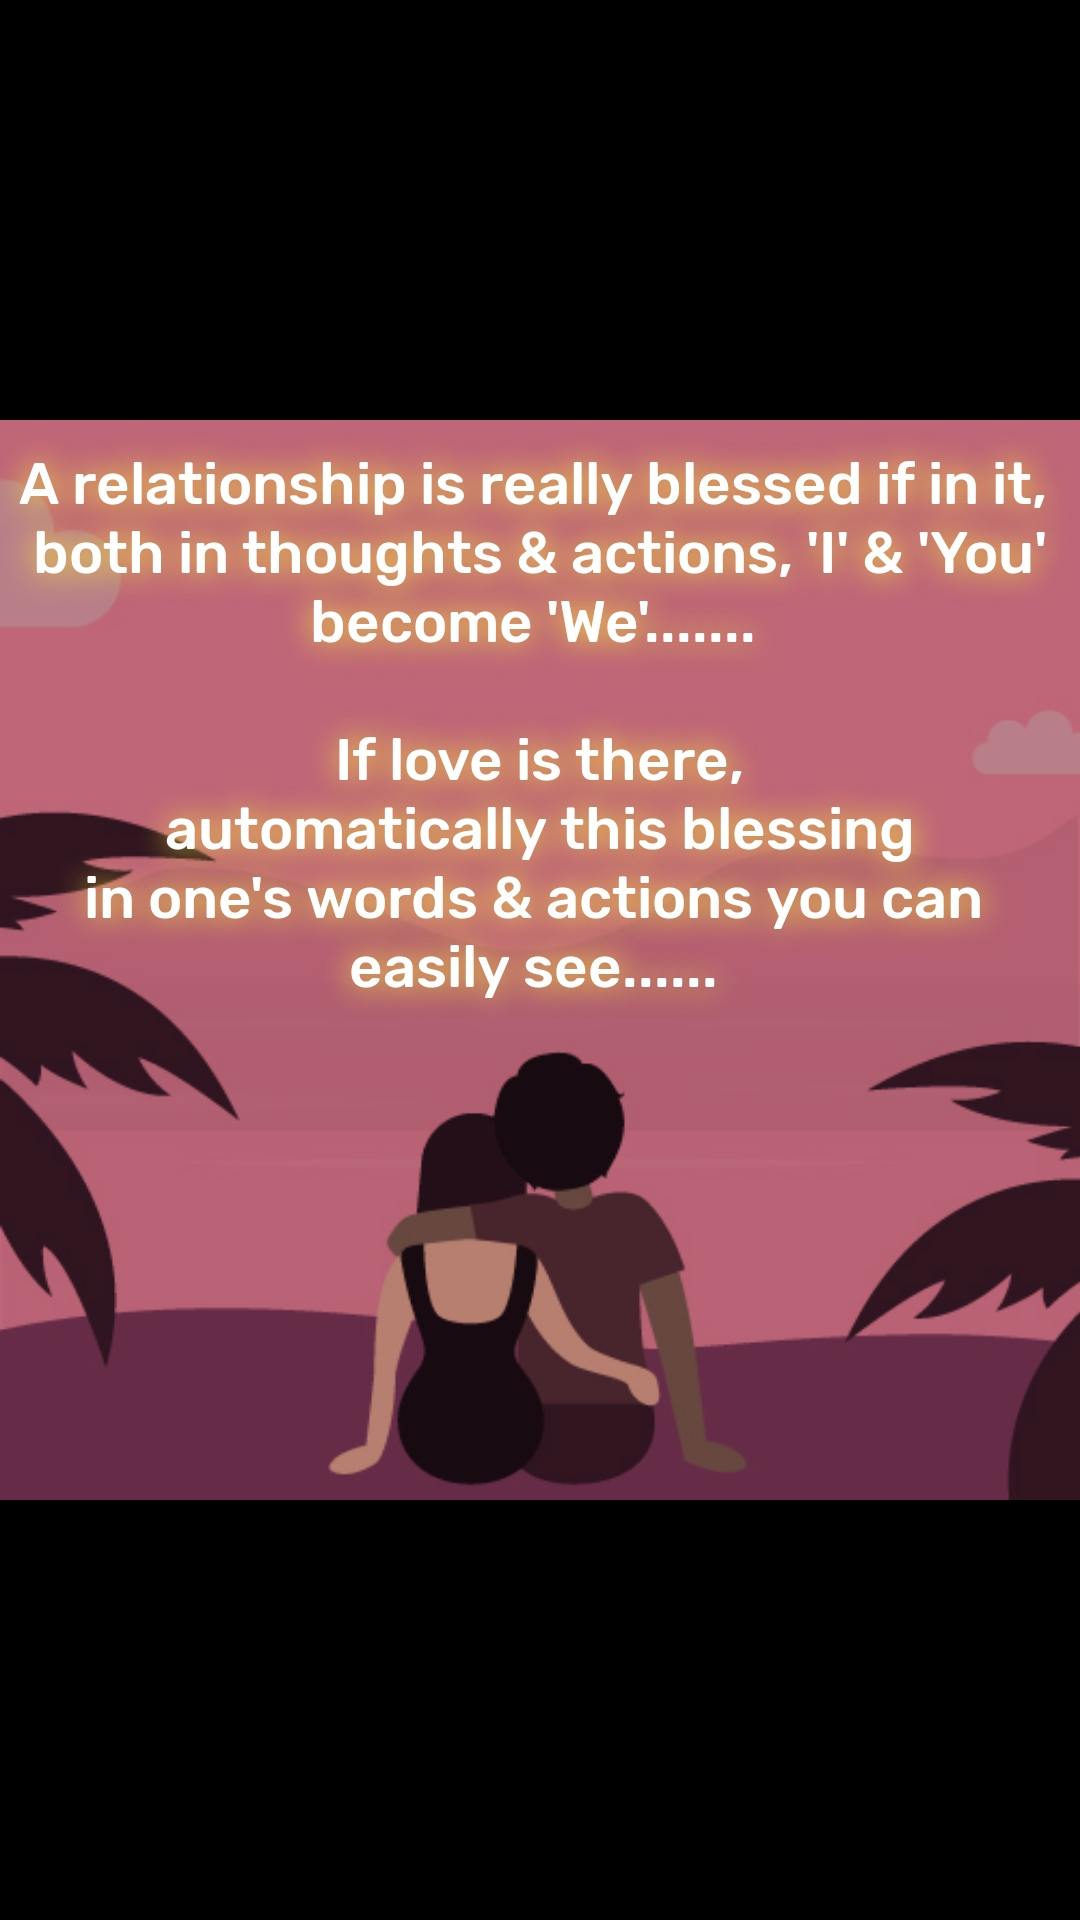 A relationship is really blessed if in it,  both in thoughts & actions, 'I' & 'You' become 'We'.......   If love is there,  automatically this blessing in one's words & actions you can easily see......